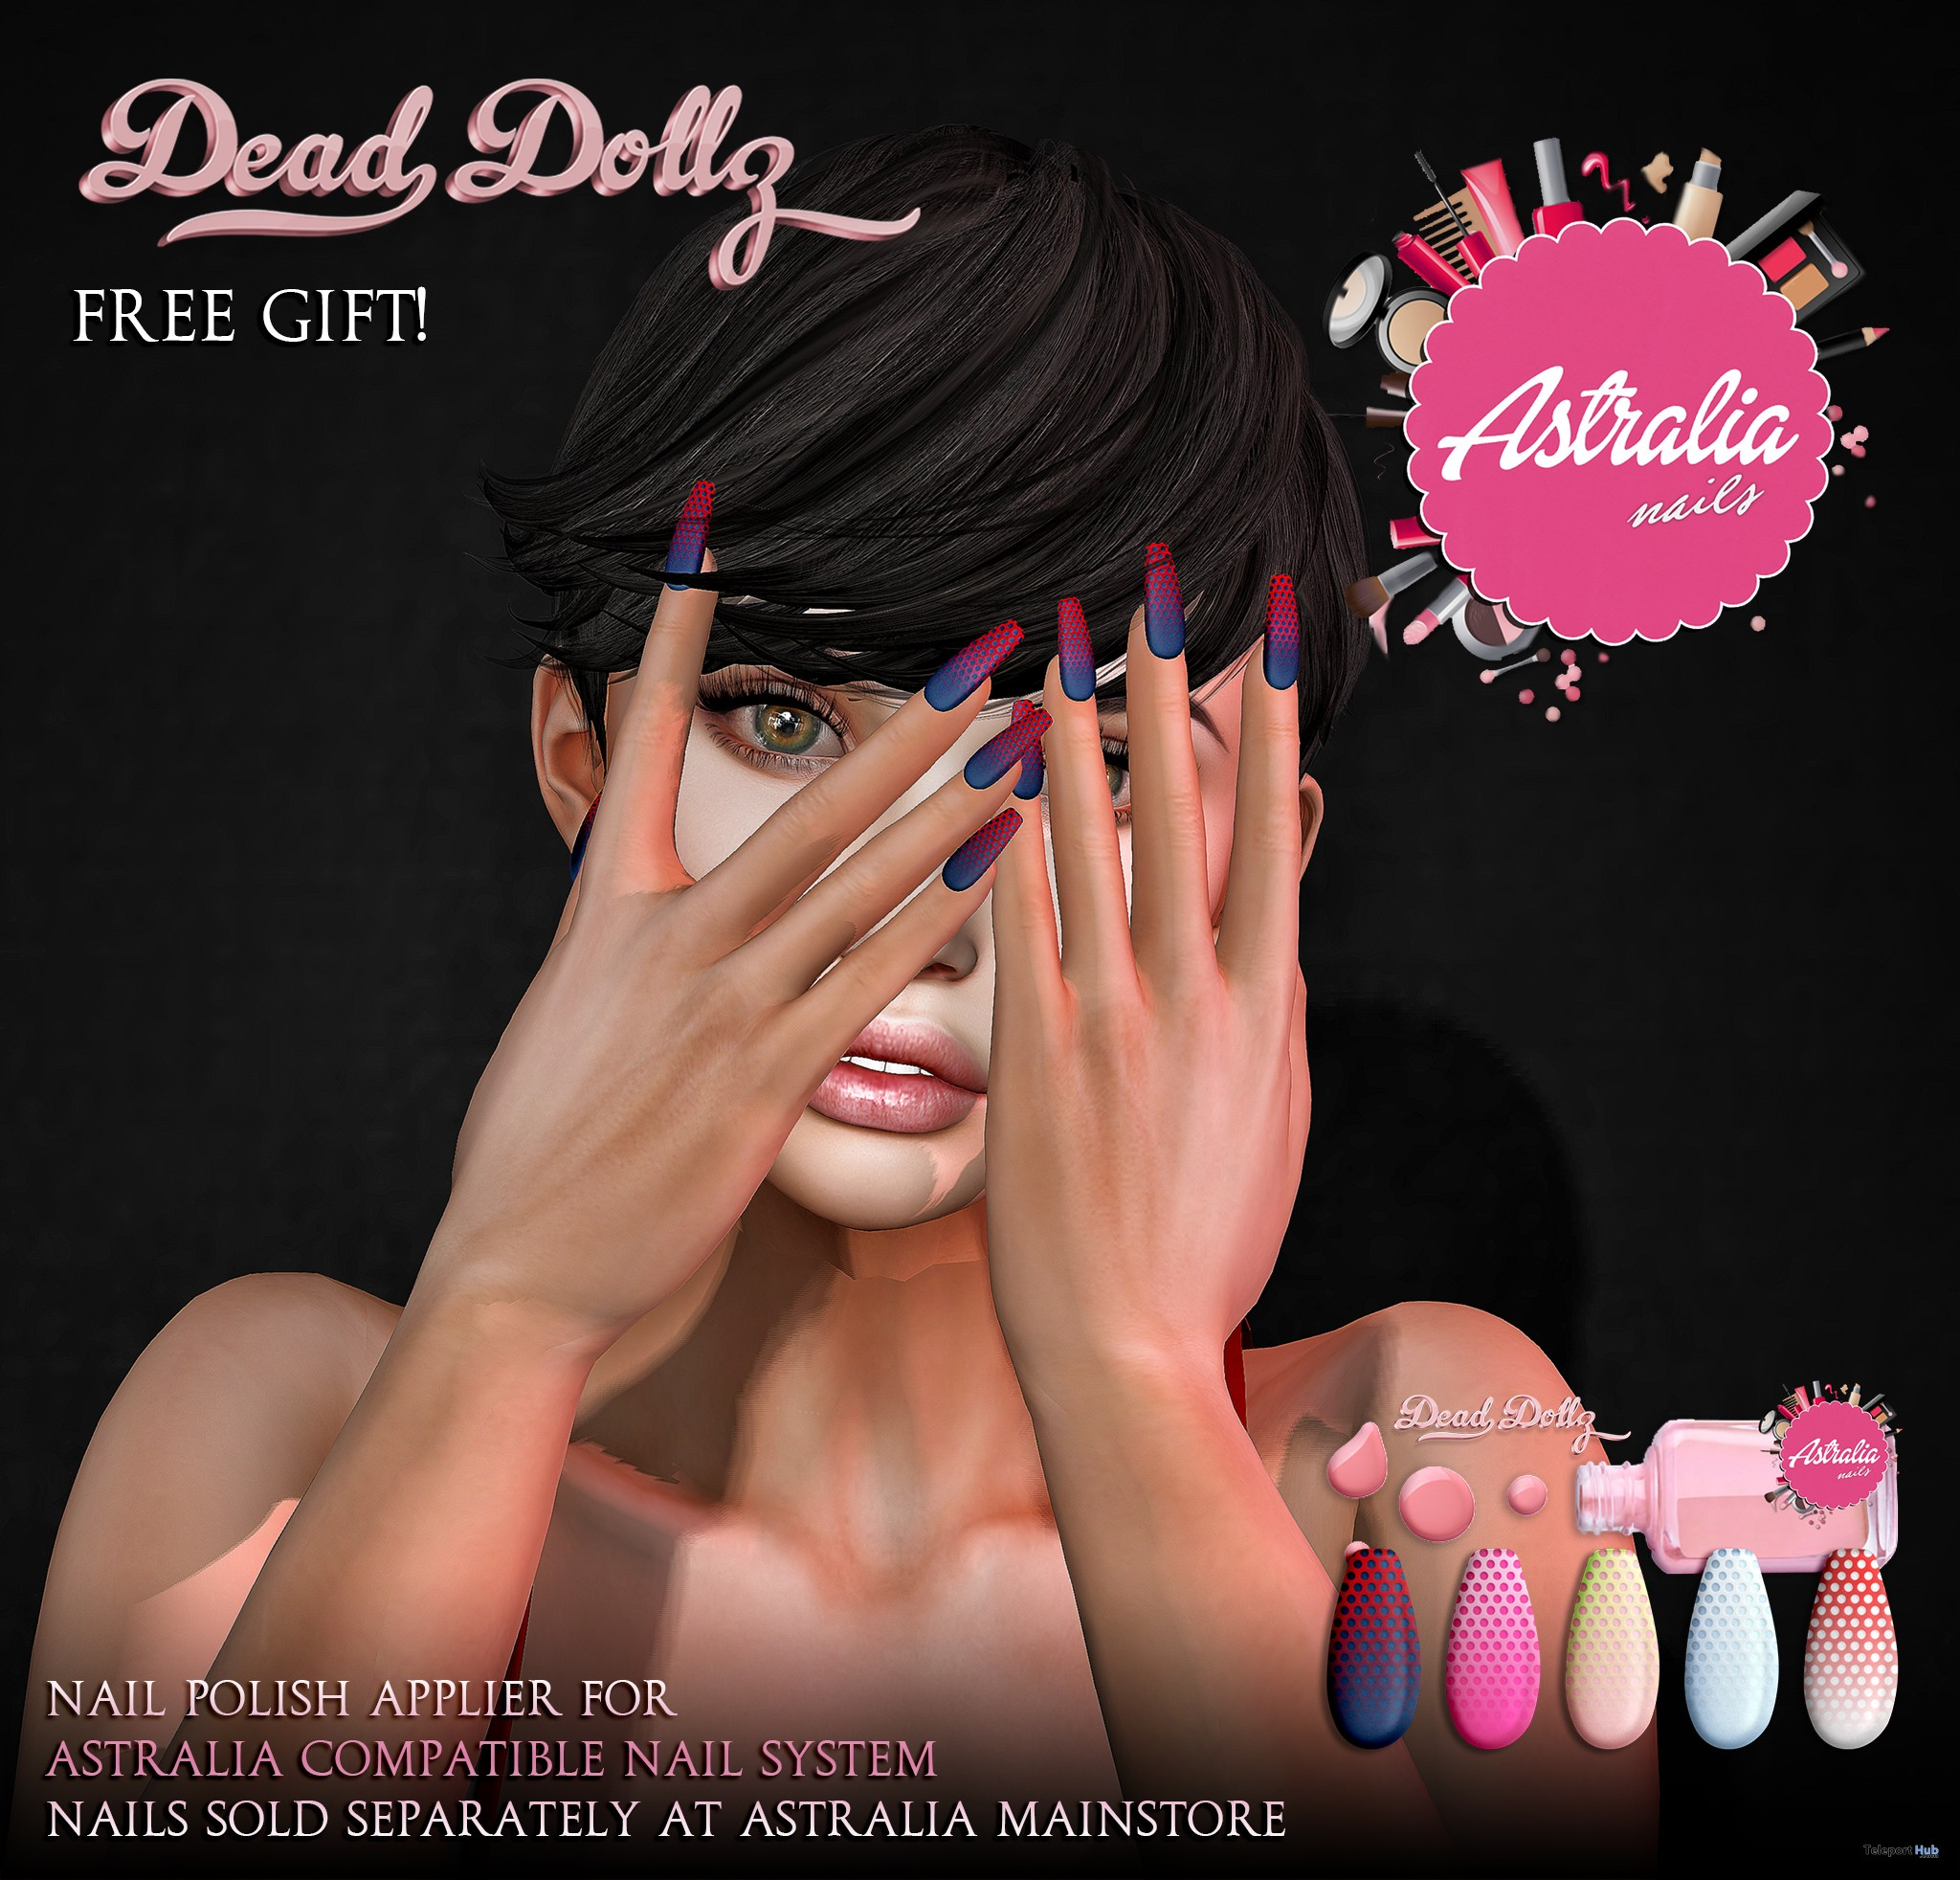 Smash Nail Polish Applier 1L Promo Gift by Dead Dollz - Teleport Hub - teleporthub.com